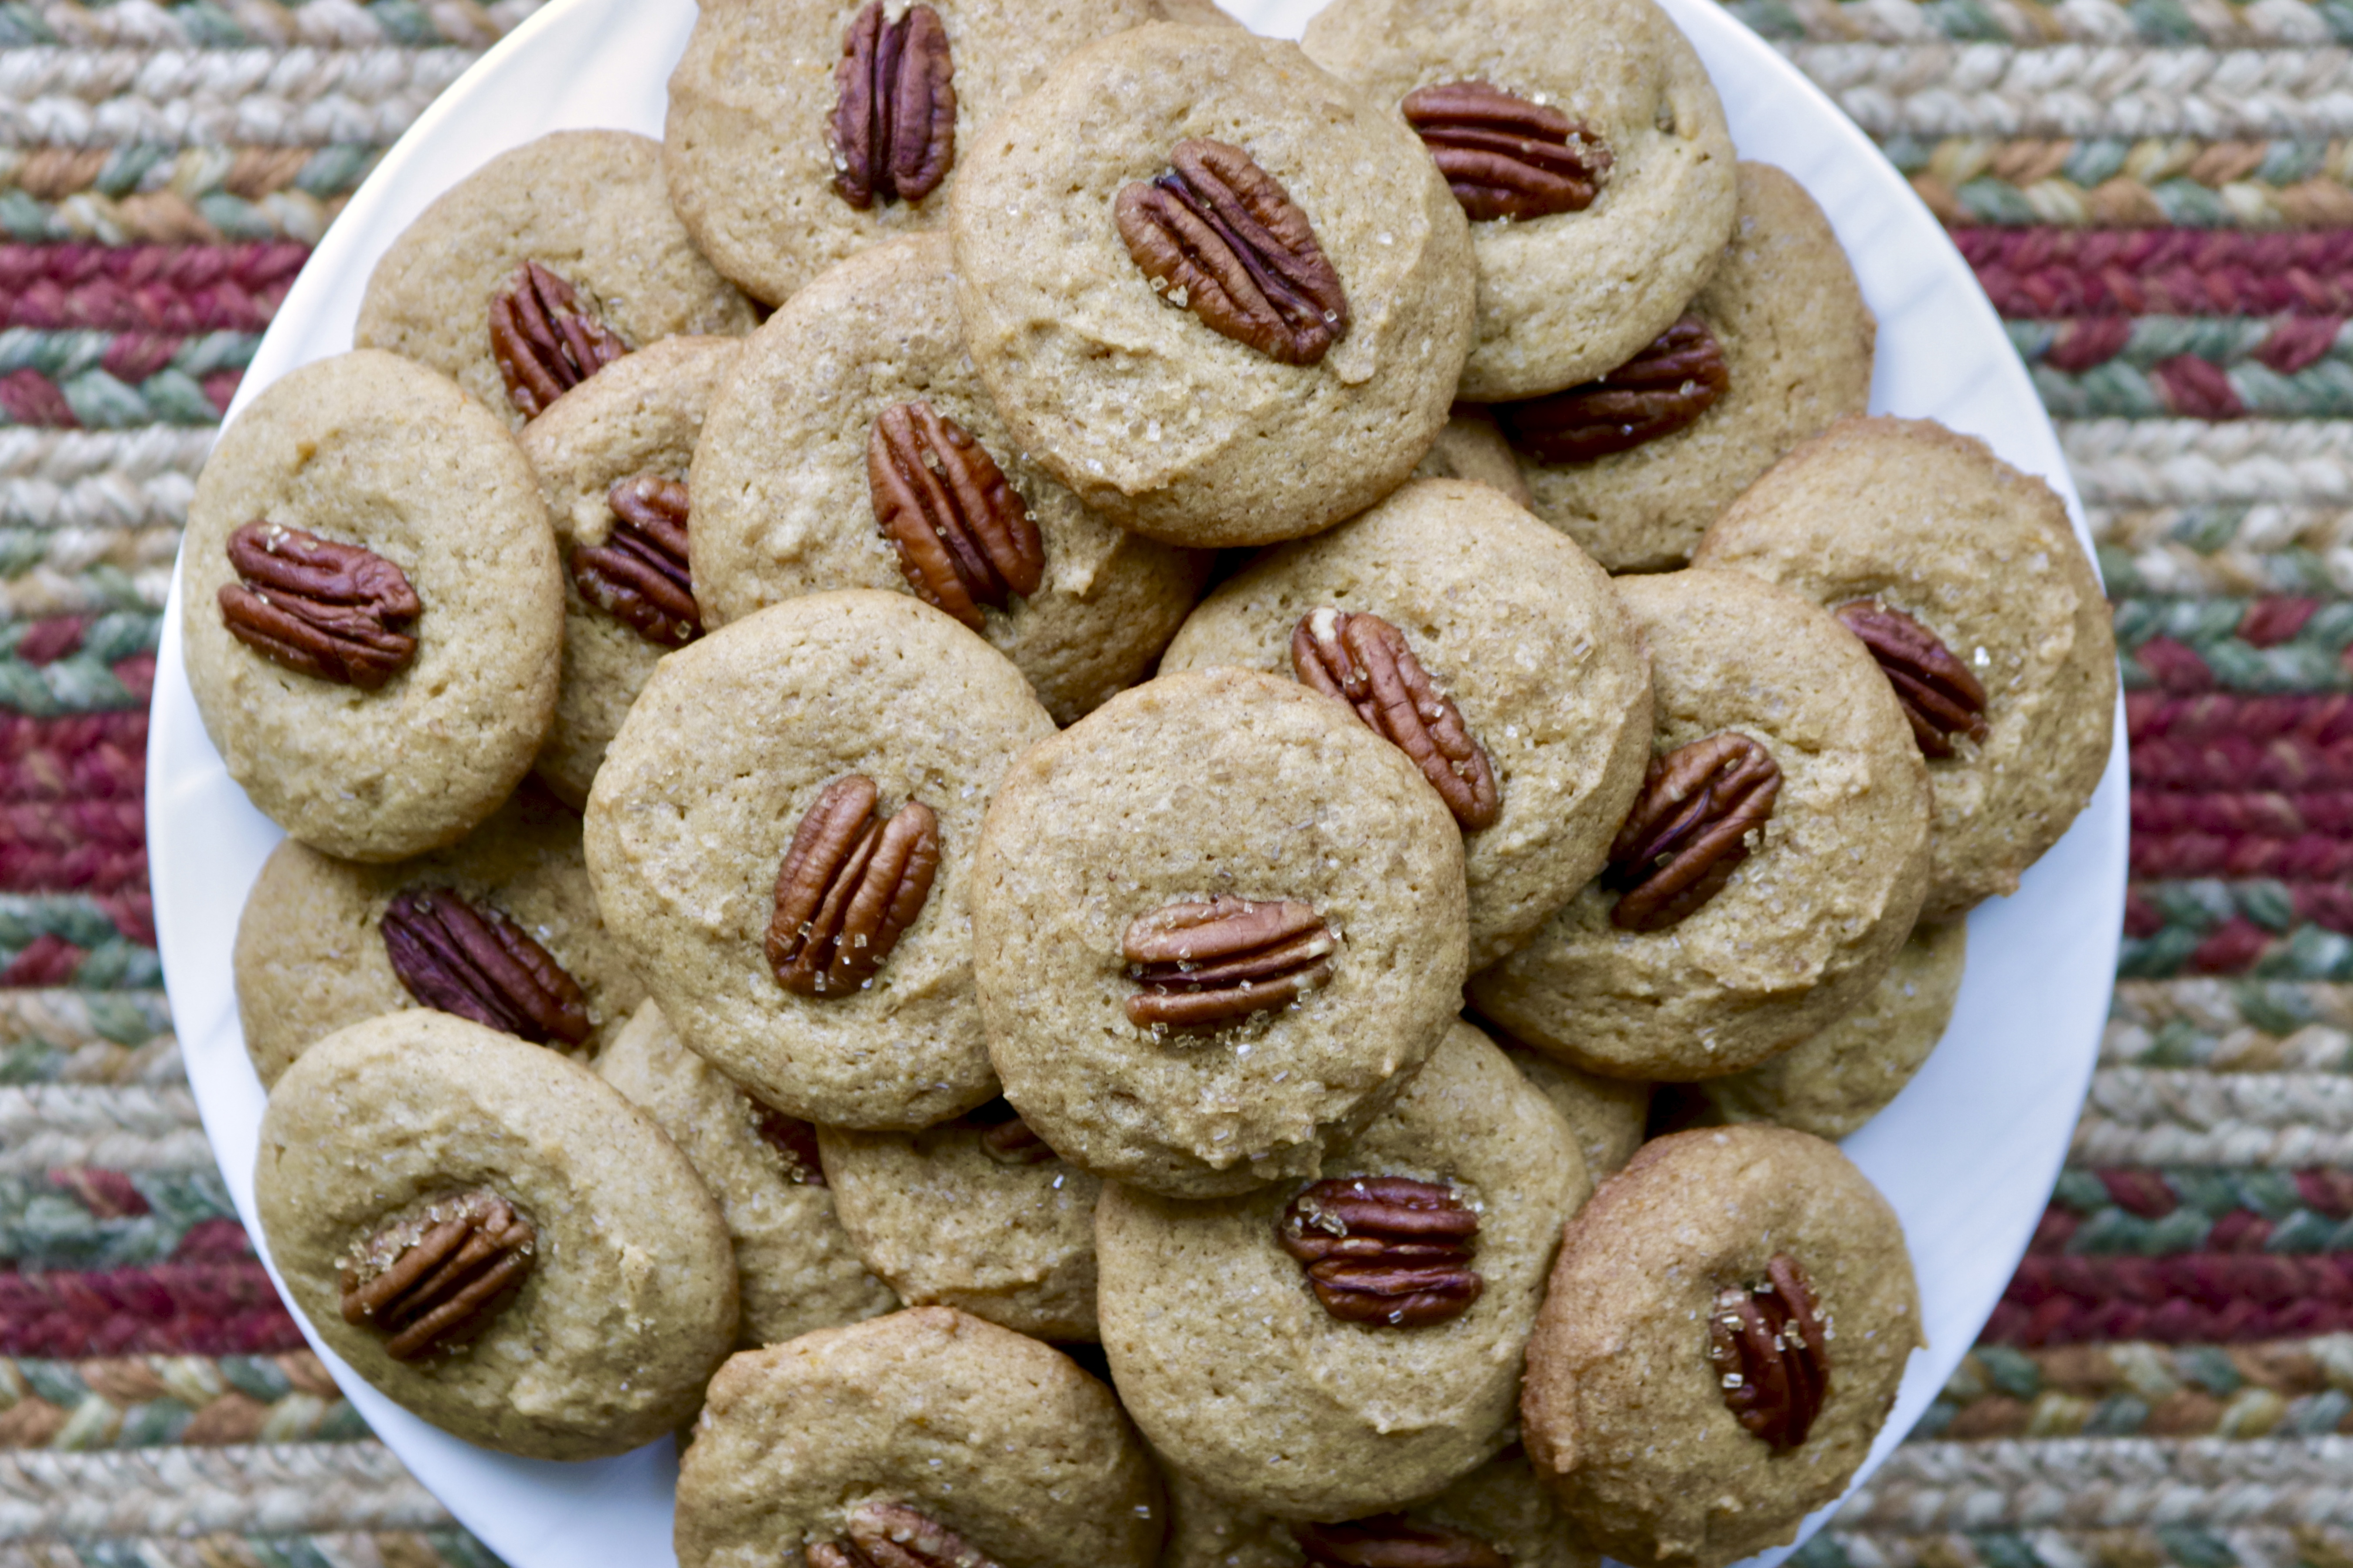 plate of baked cookies